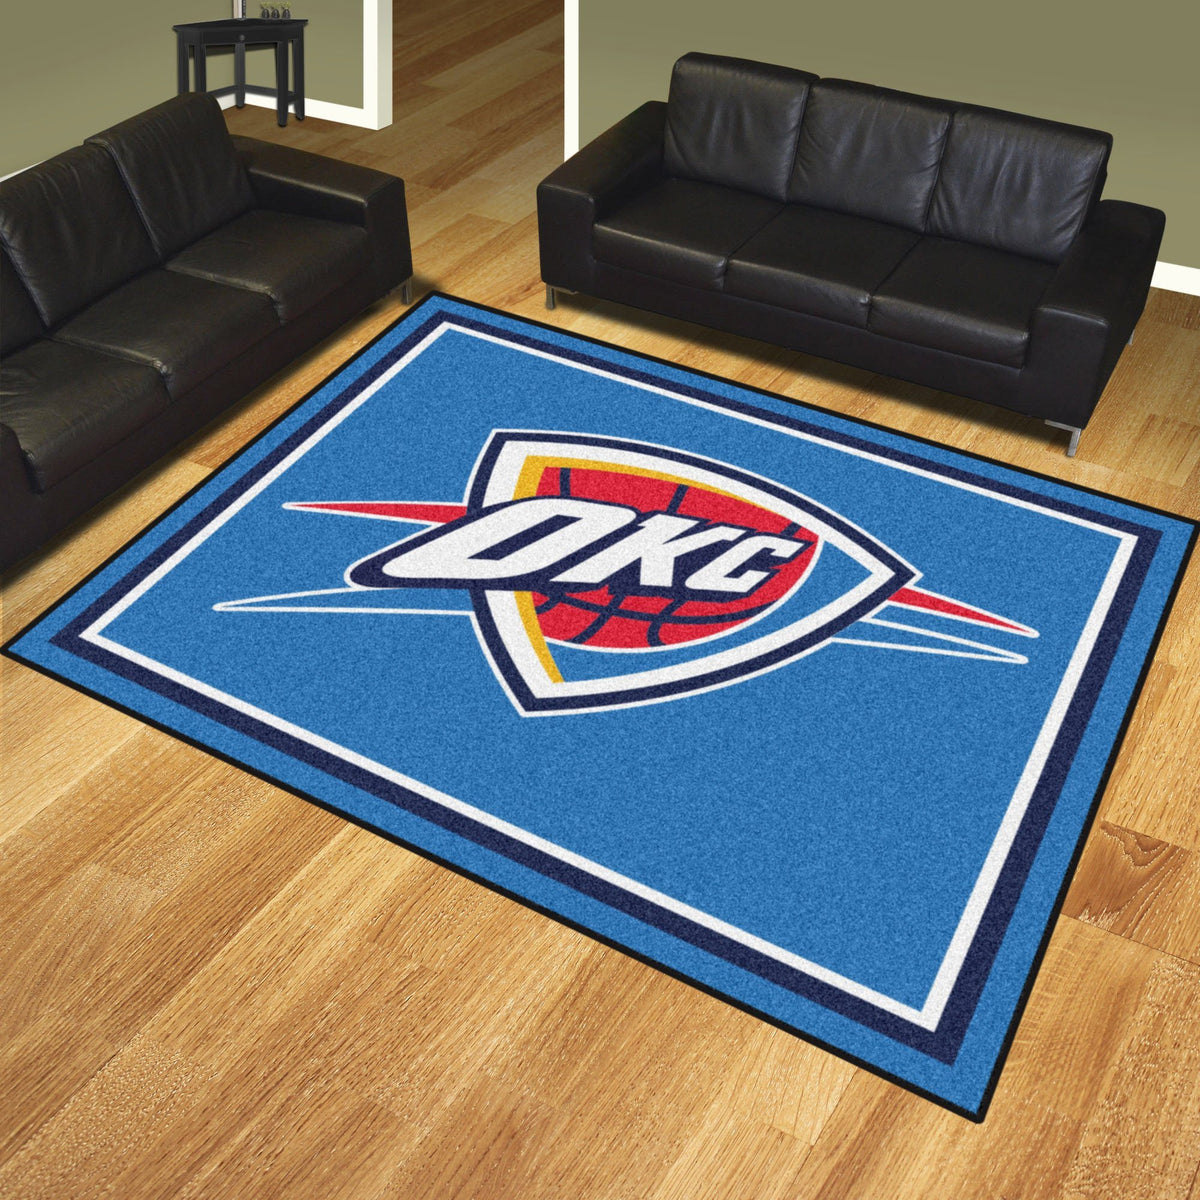 NBA - 8' x 10' Rug NBA Mats, Plush Rugs, 8x10 Rug, NBA, Home Fan Mats Oklahoma City Thunder